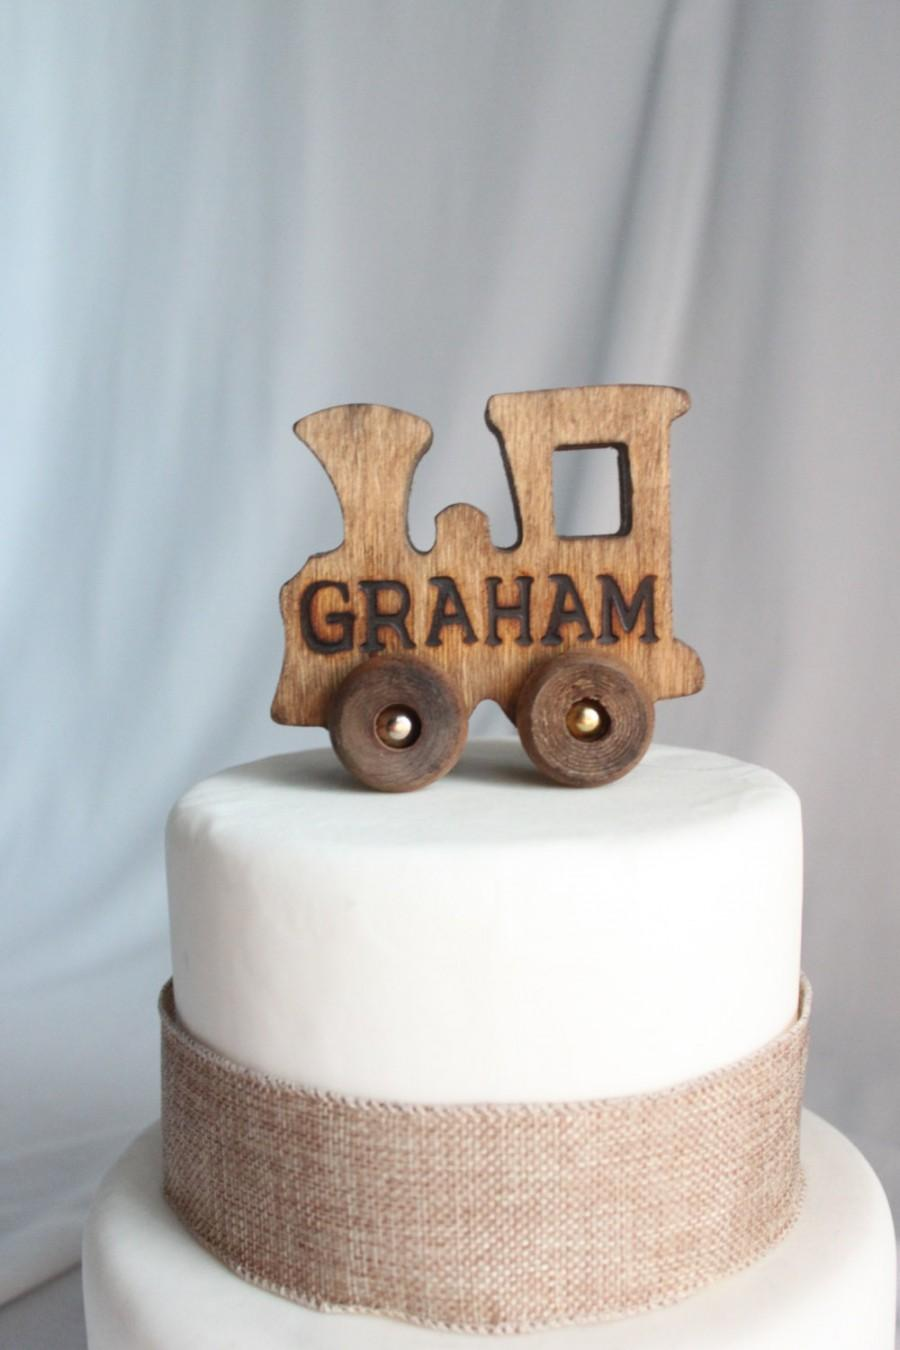 Old Fashioned Wood Toy Engine Train With Name Cake Topper Personalized Vintage Look Varnish Over The Top Engraved